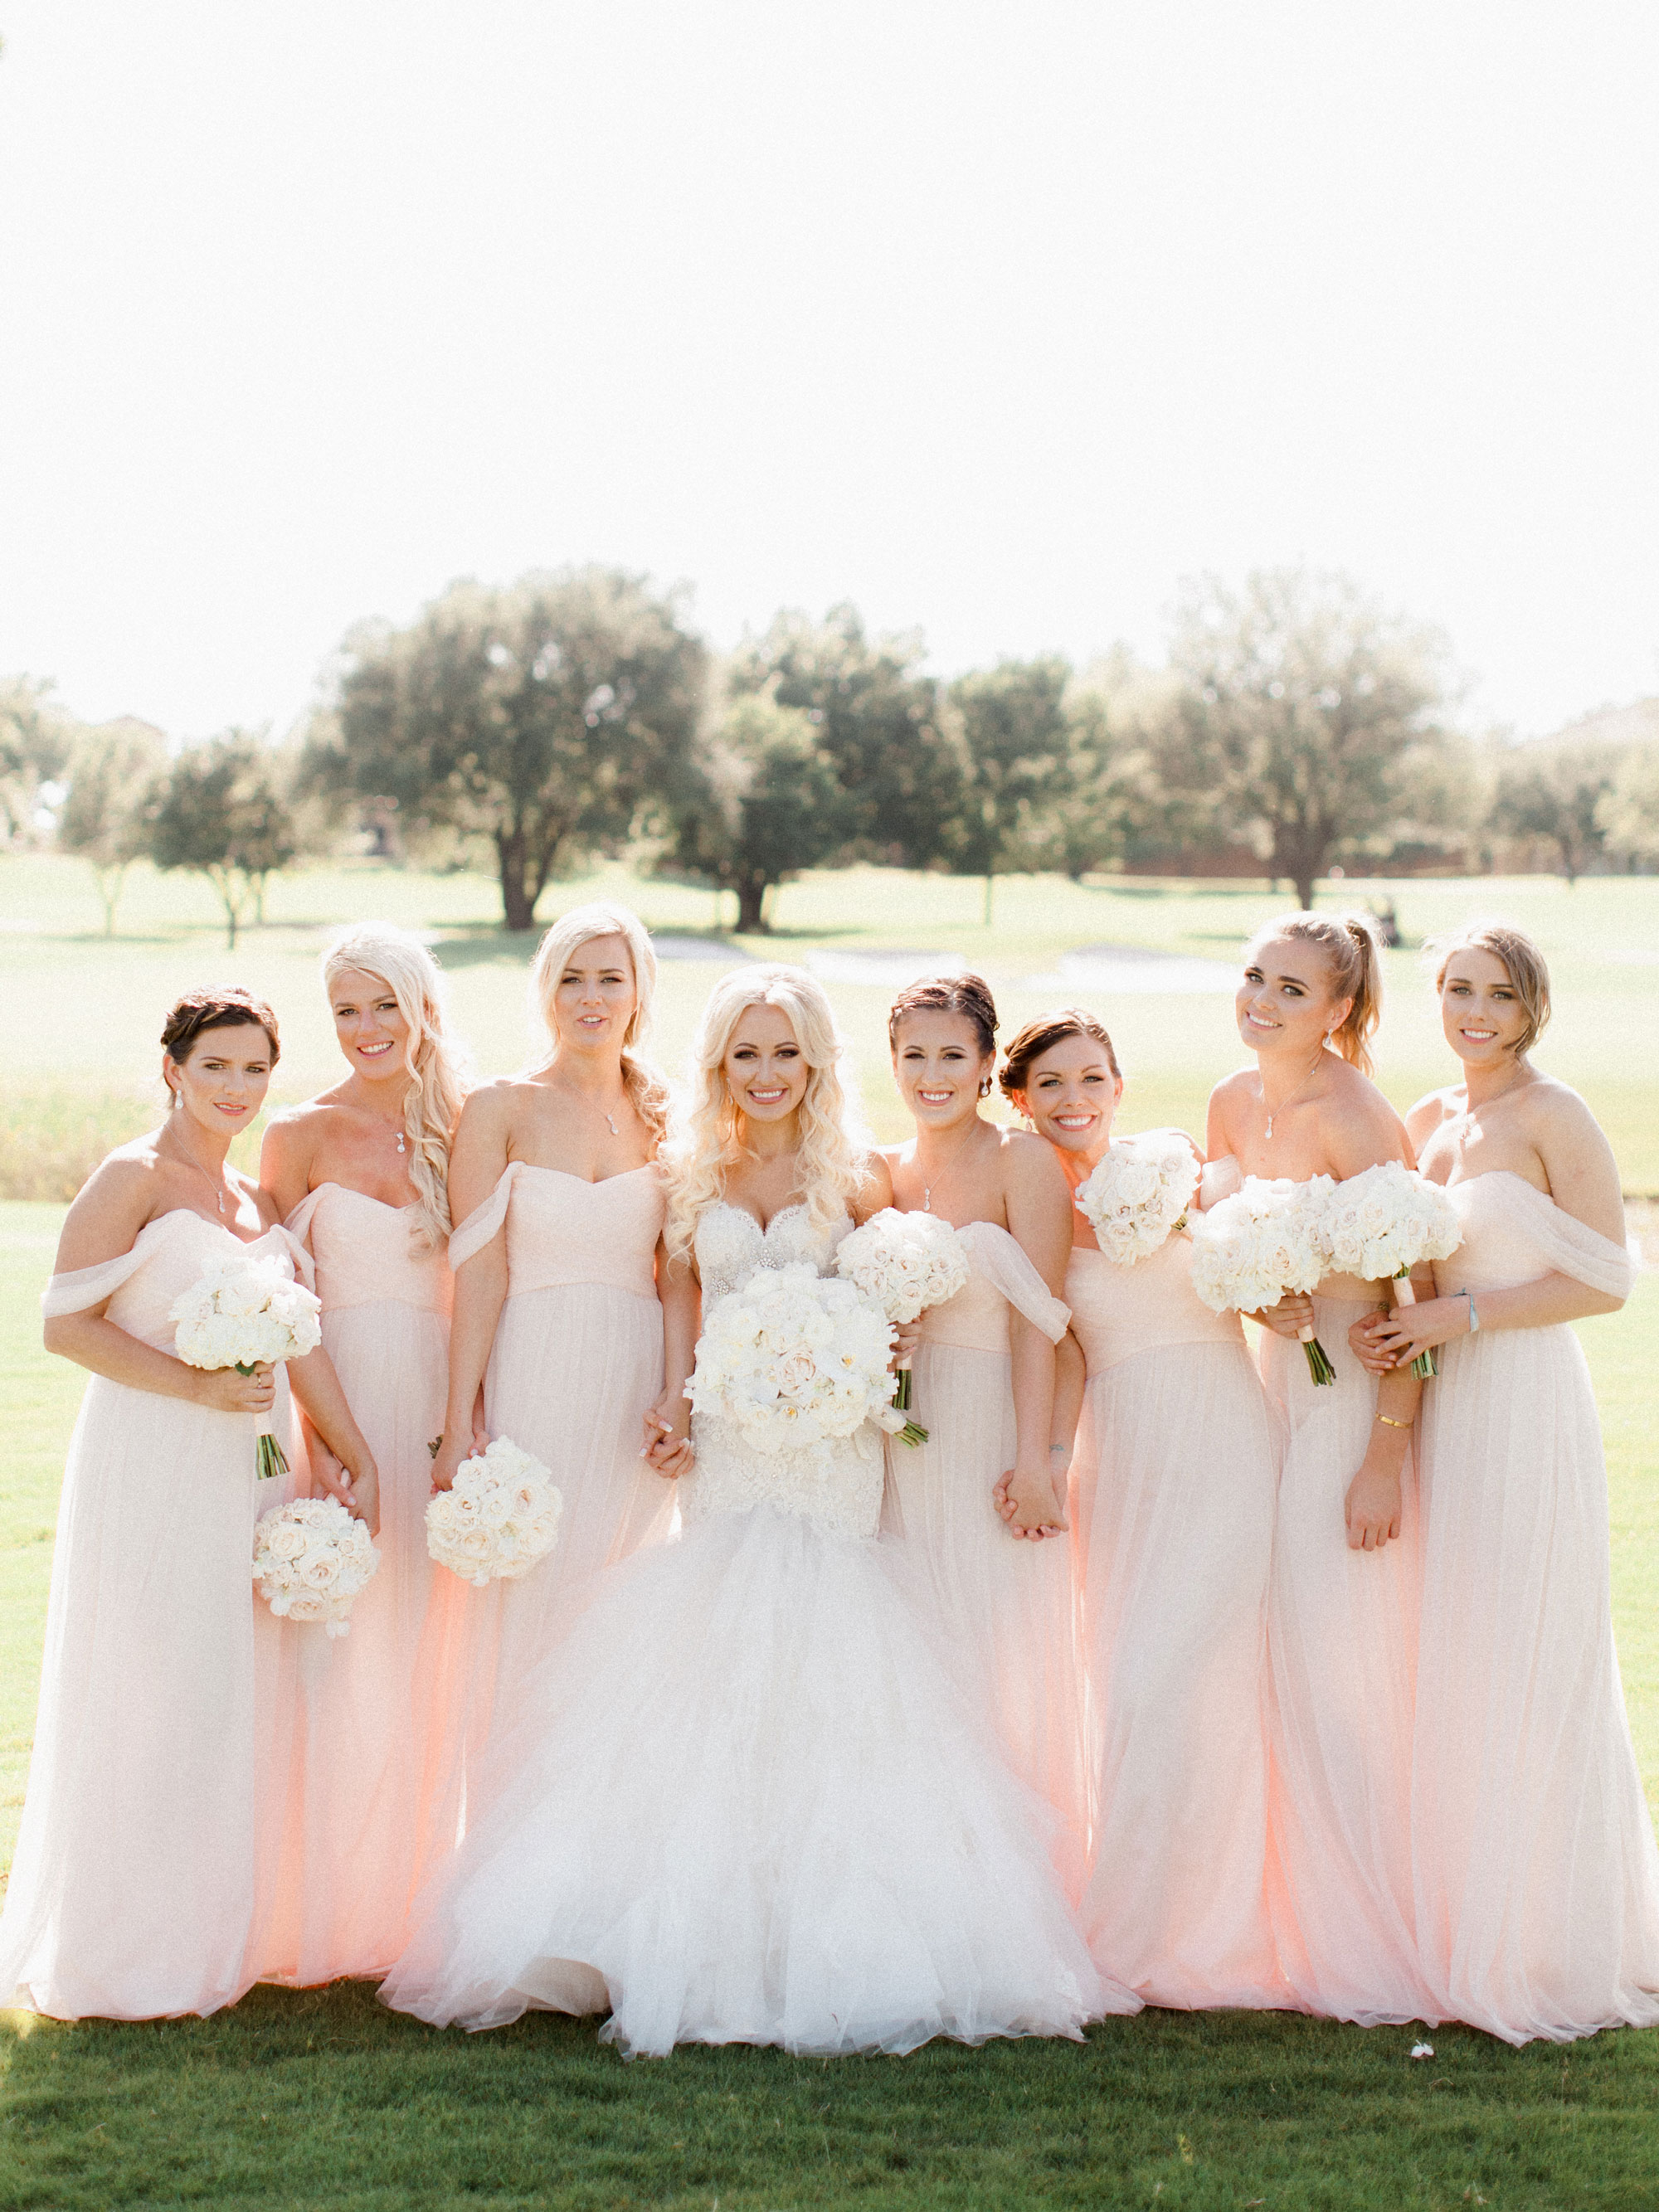 Inside Weddings Spring 2017 issue bride in mermaid dress bridesmaids in blush off the shoulder bridesmaid dresses